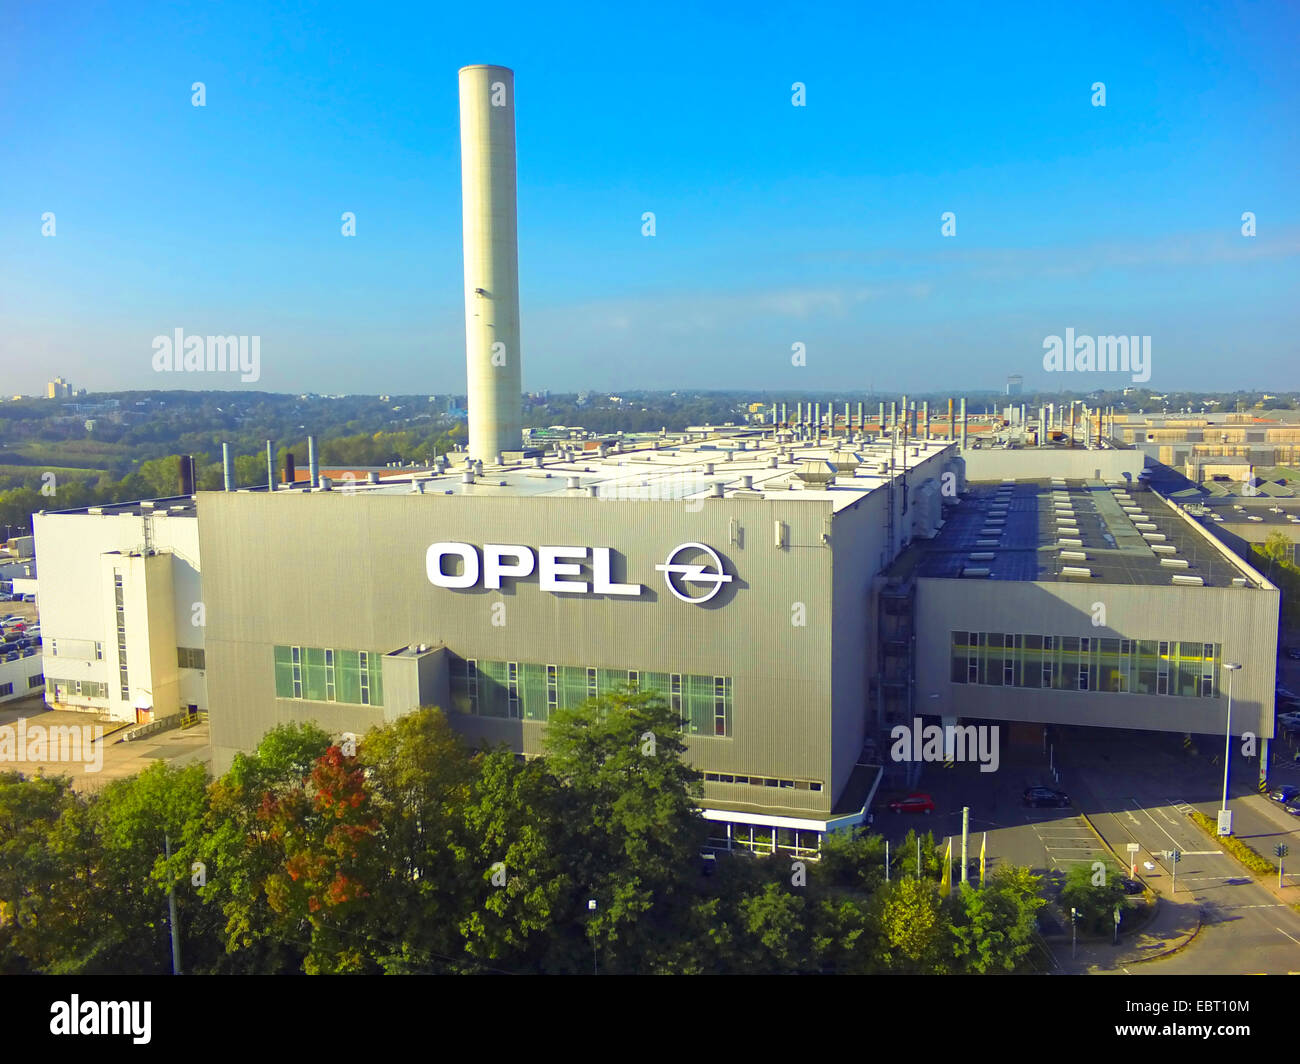 aerial view of Opel's manufacturing plant in Bochum, Germany, North Rhine-Westphalia, Ruhr Area, Bochum - Stock Image